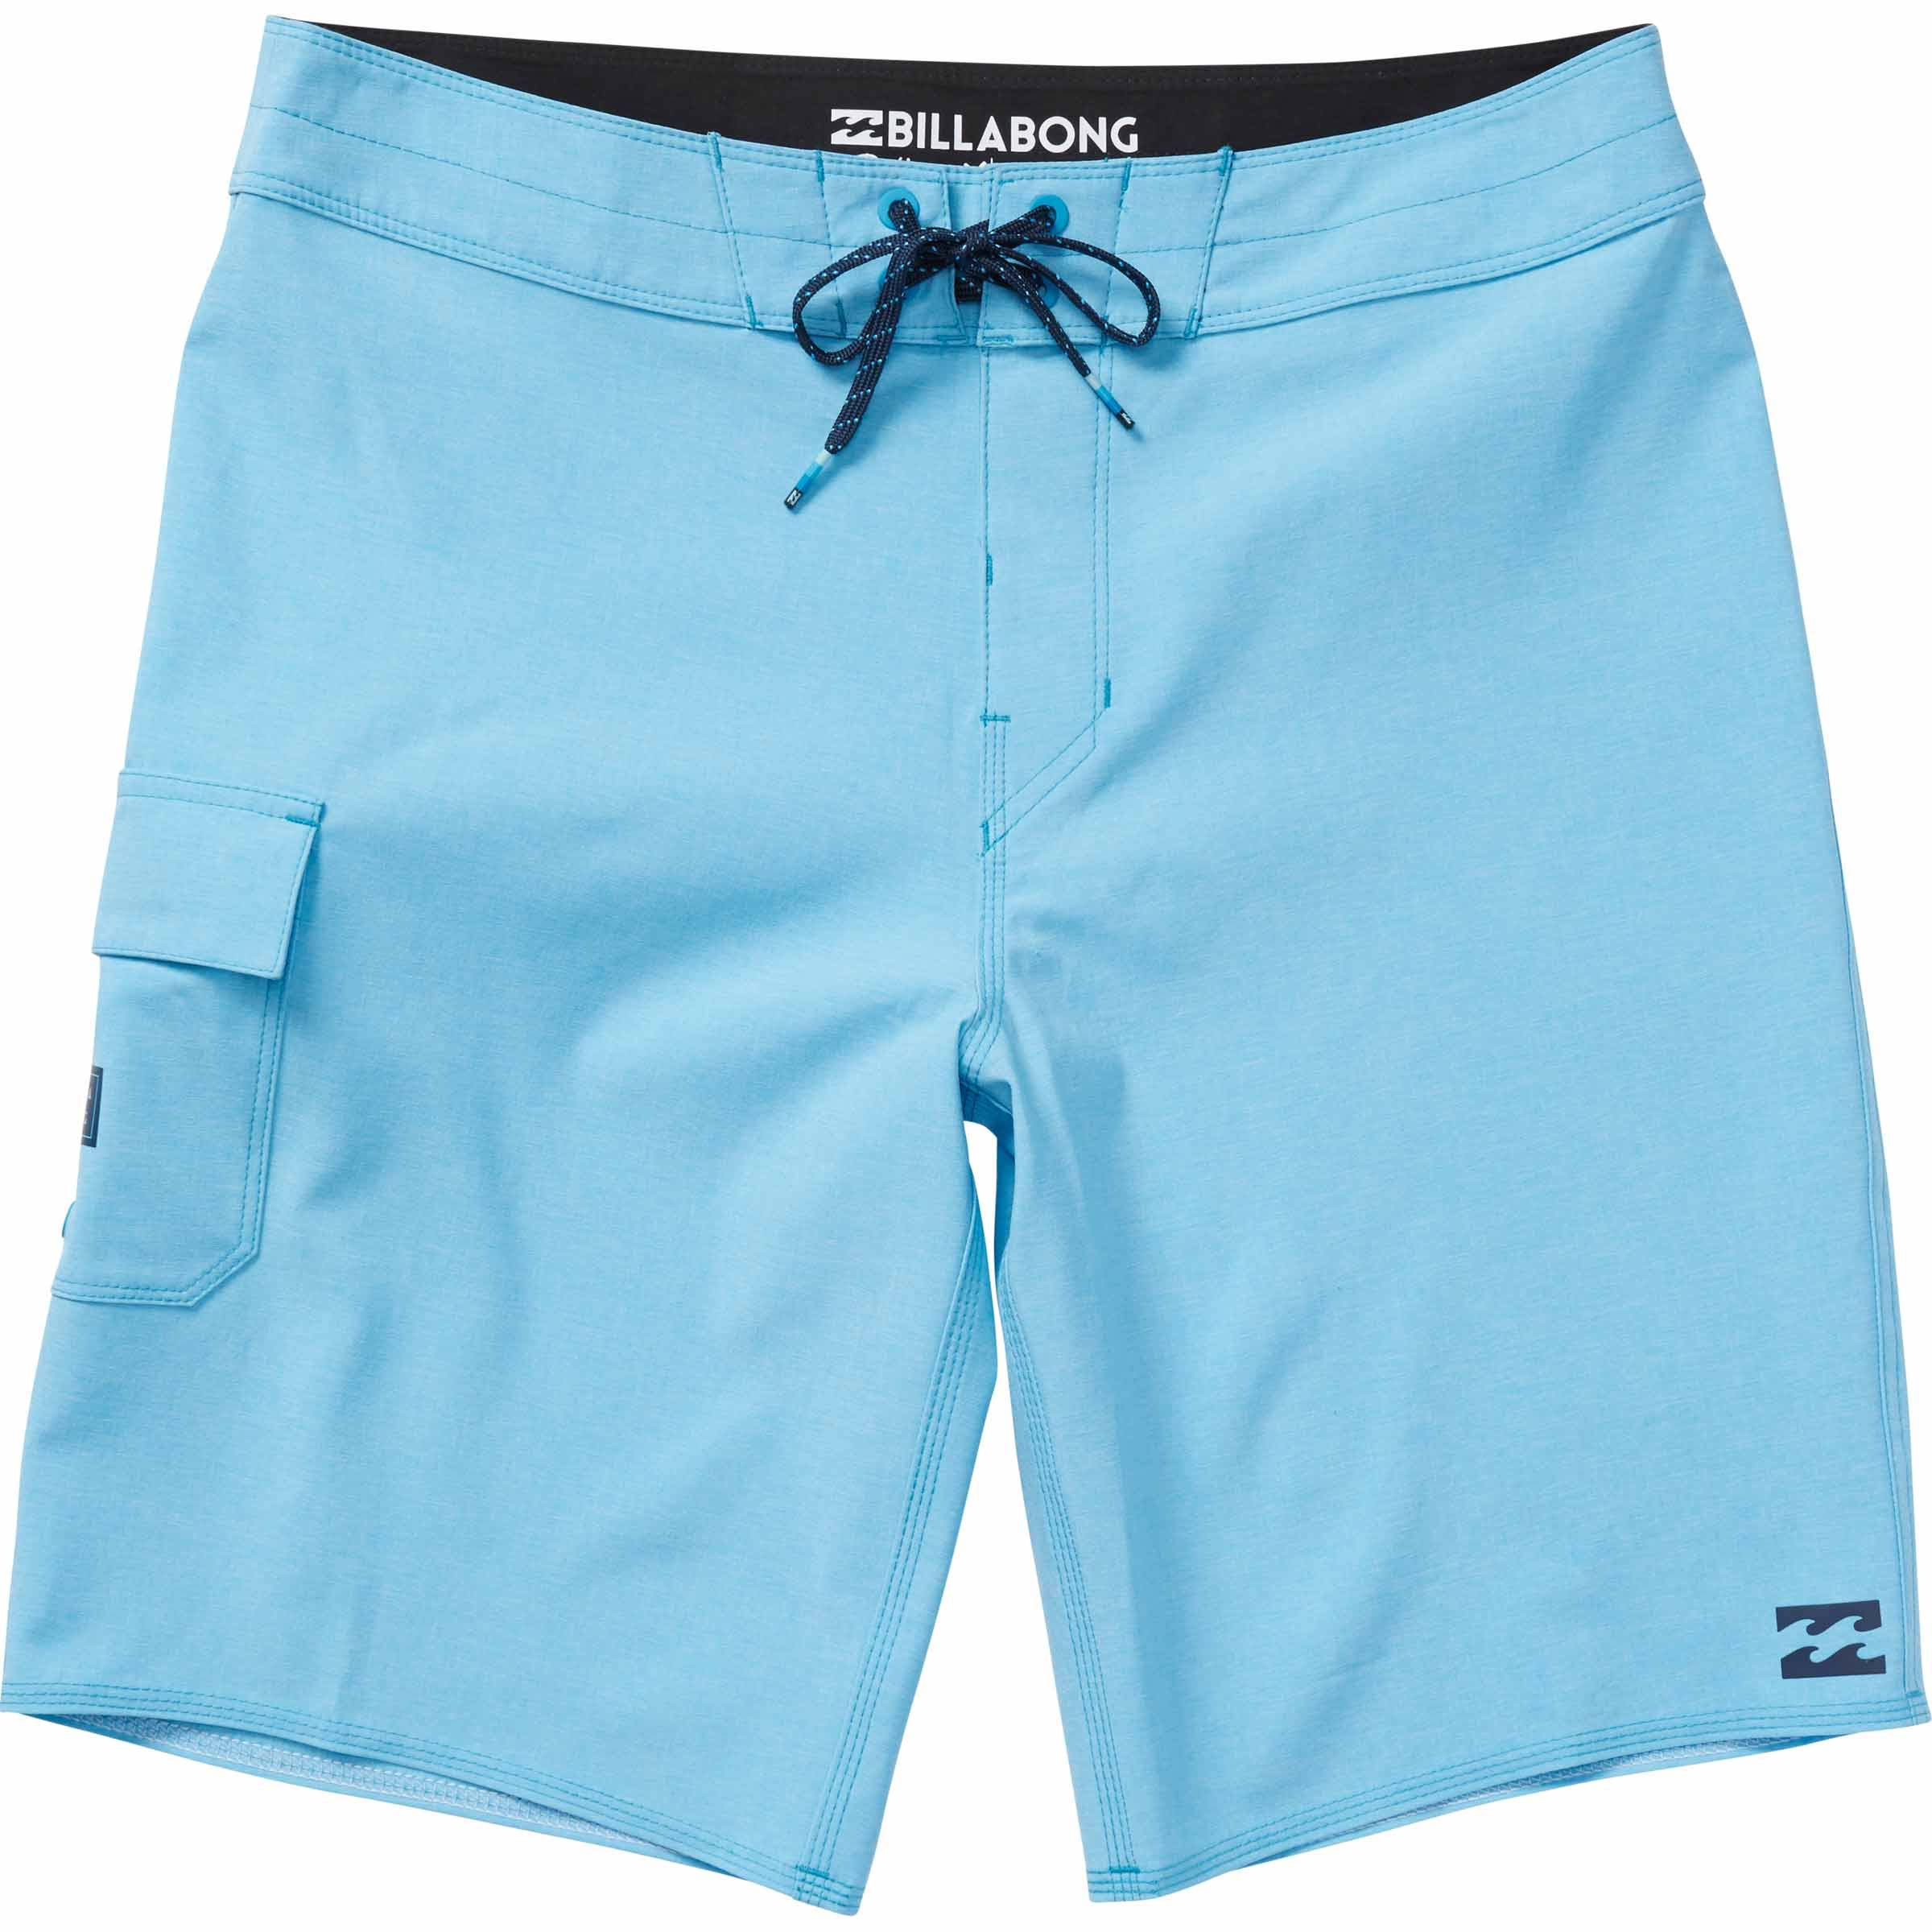 Billabong All Day x Boardshorts Men's Swimwear Blue Heather : 32